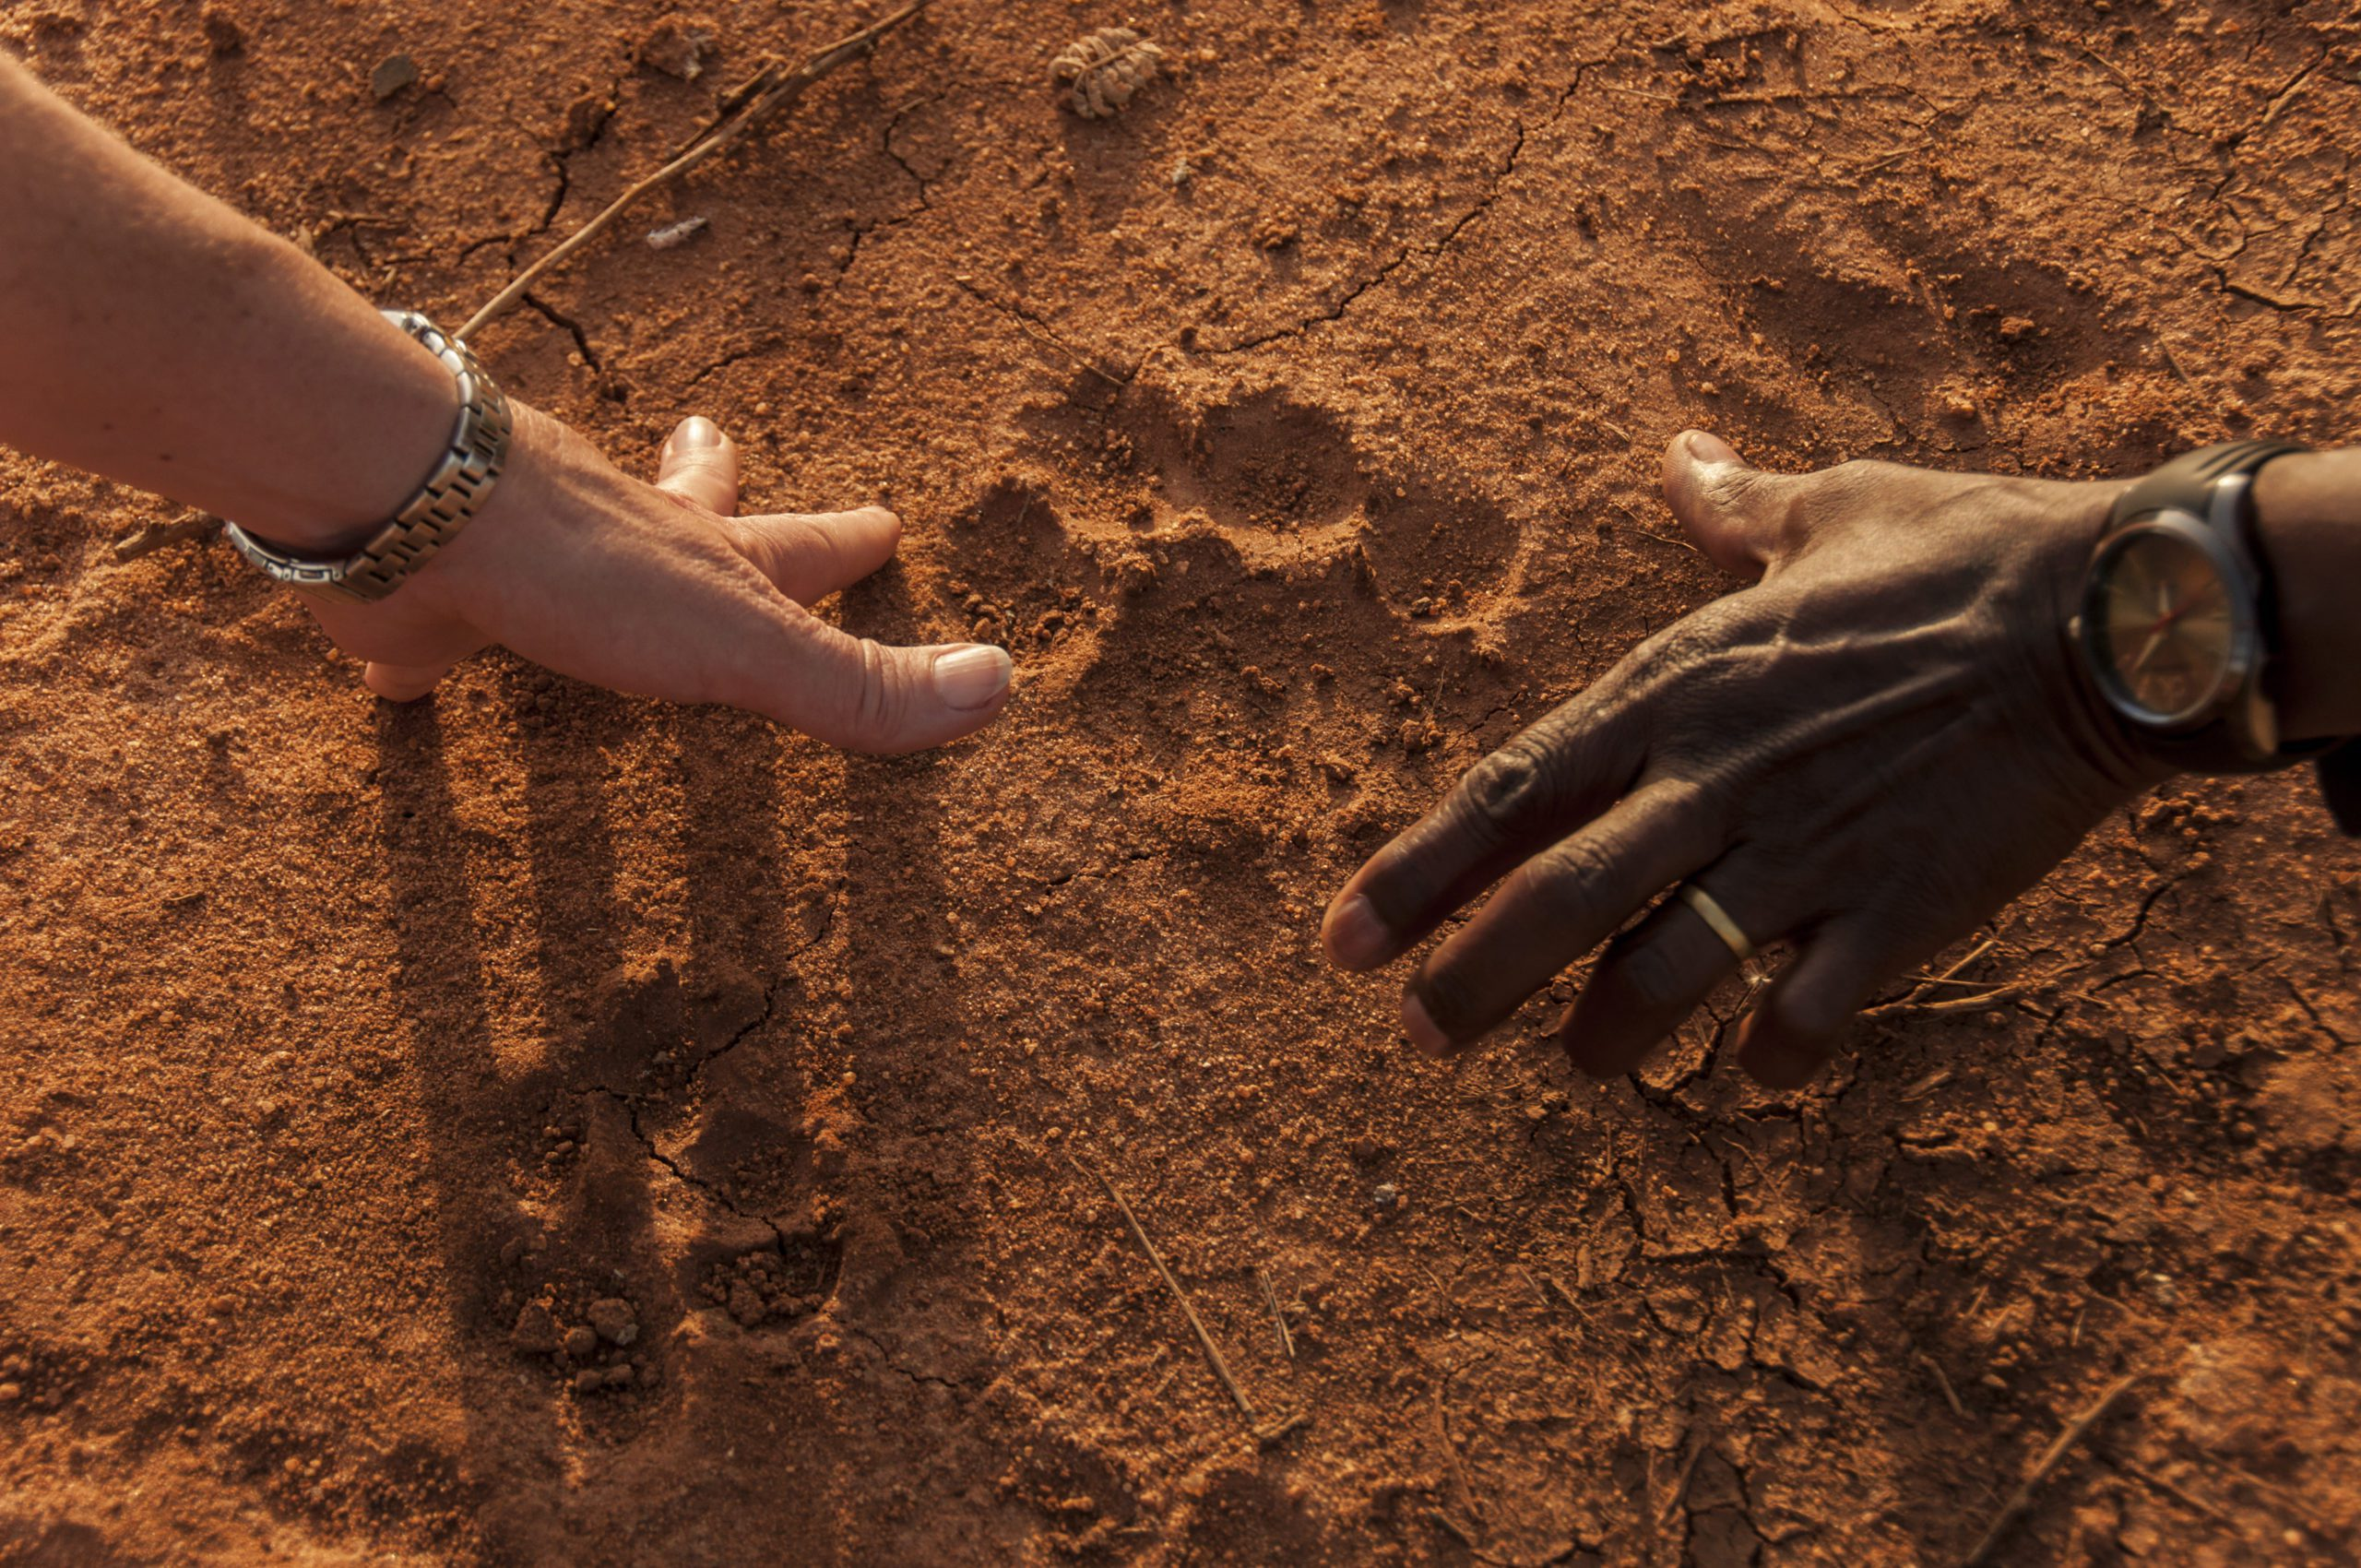 guest and guide comparing their hand print in the red dirt to that of a larger cat